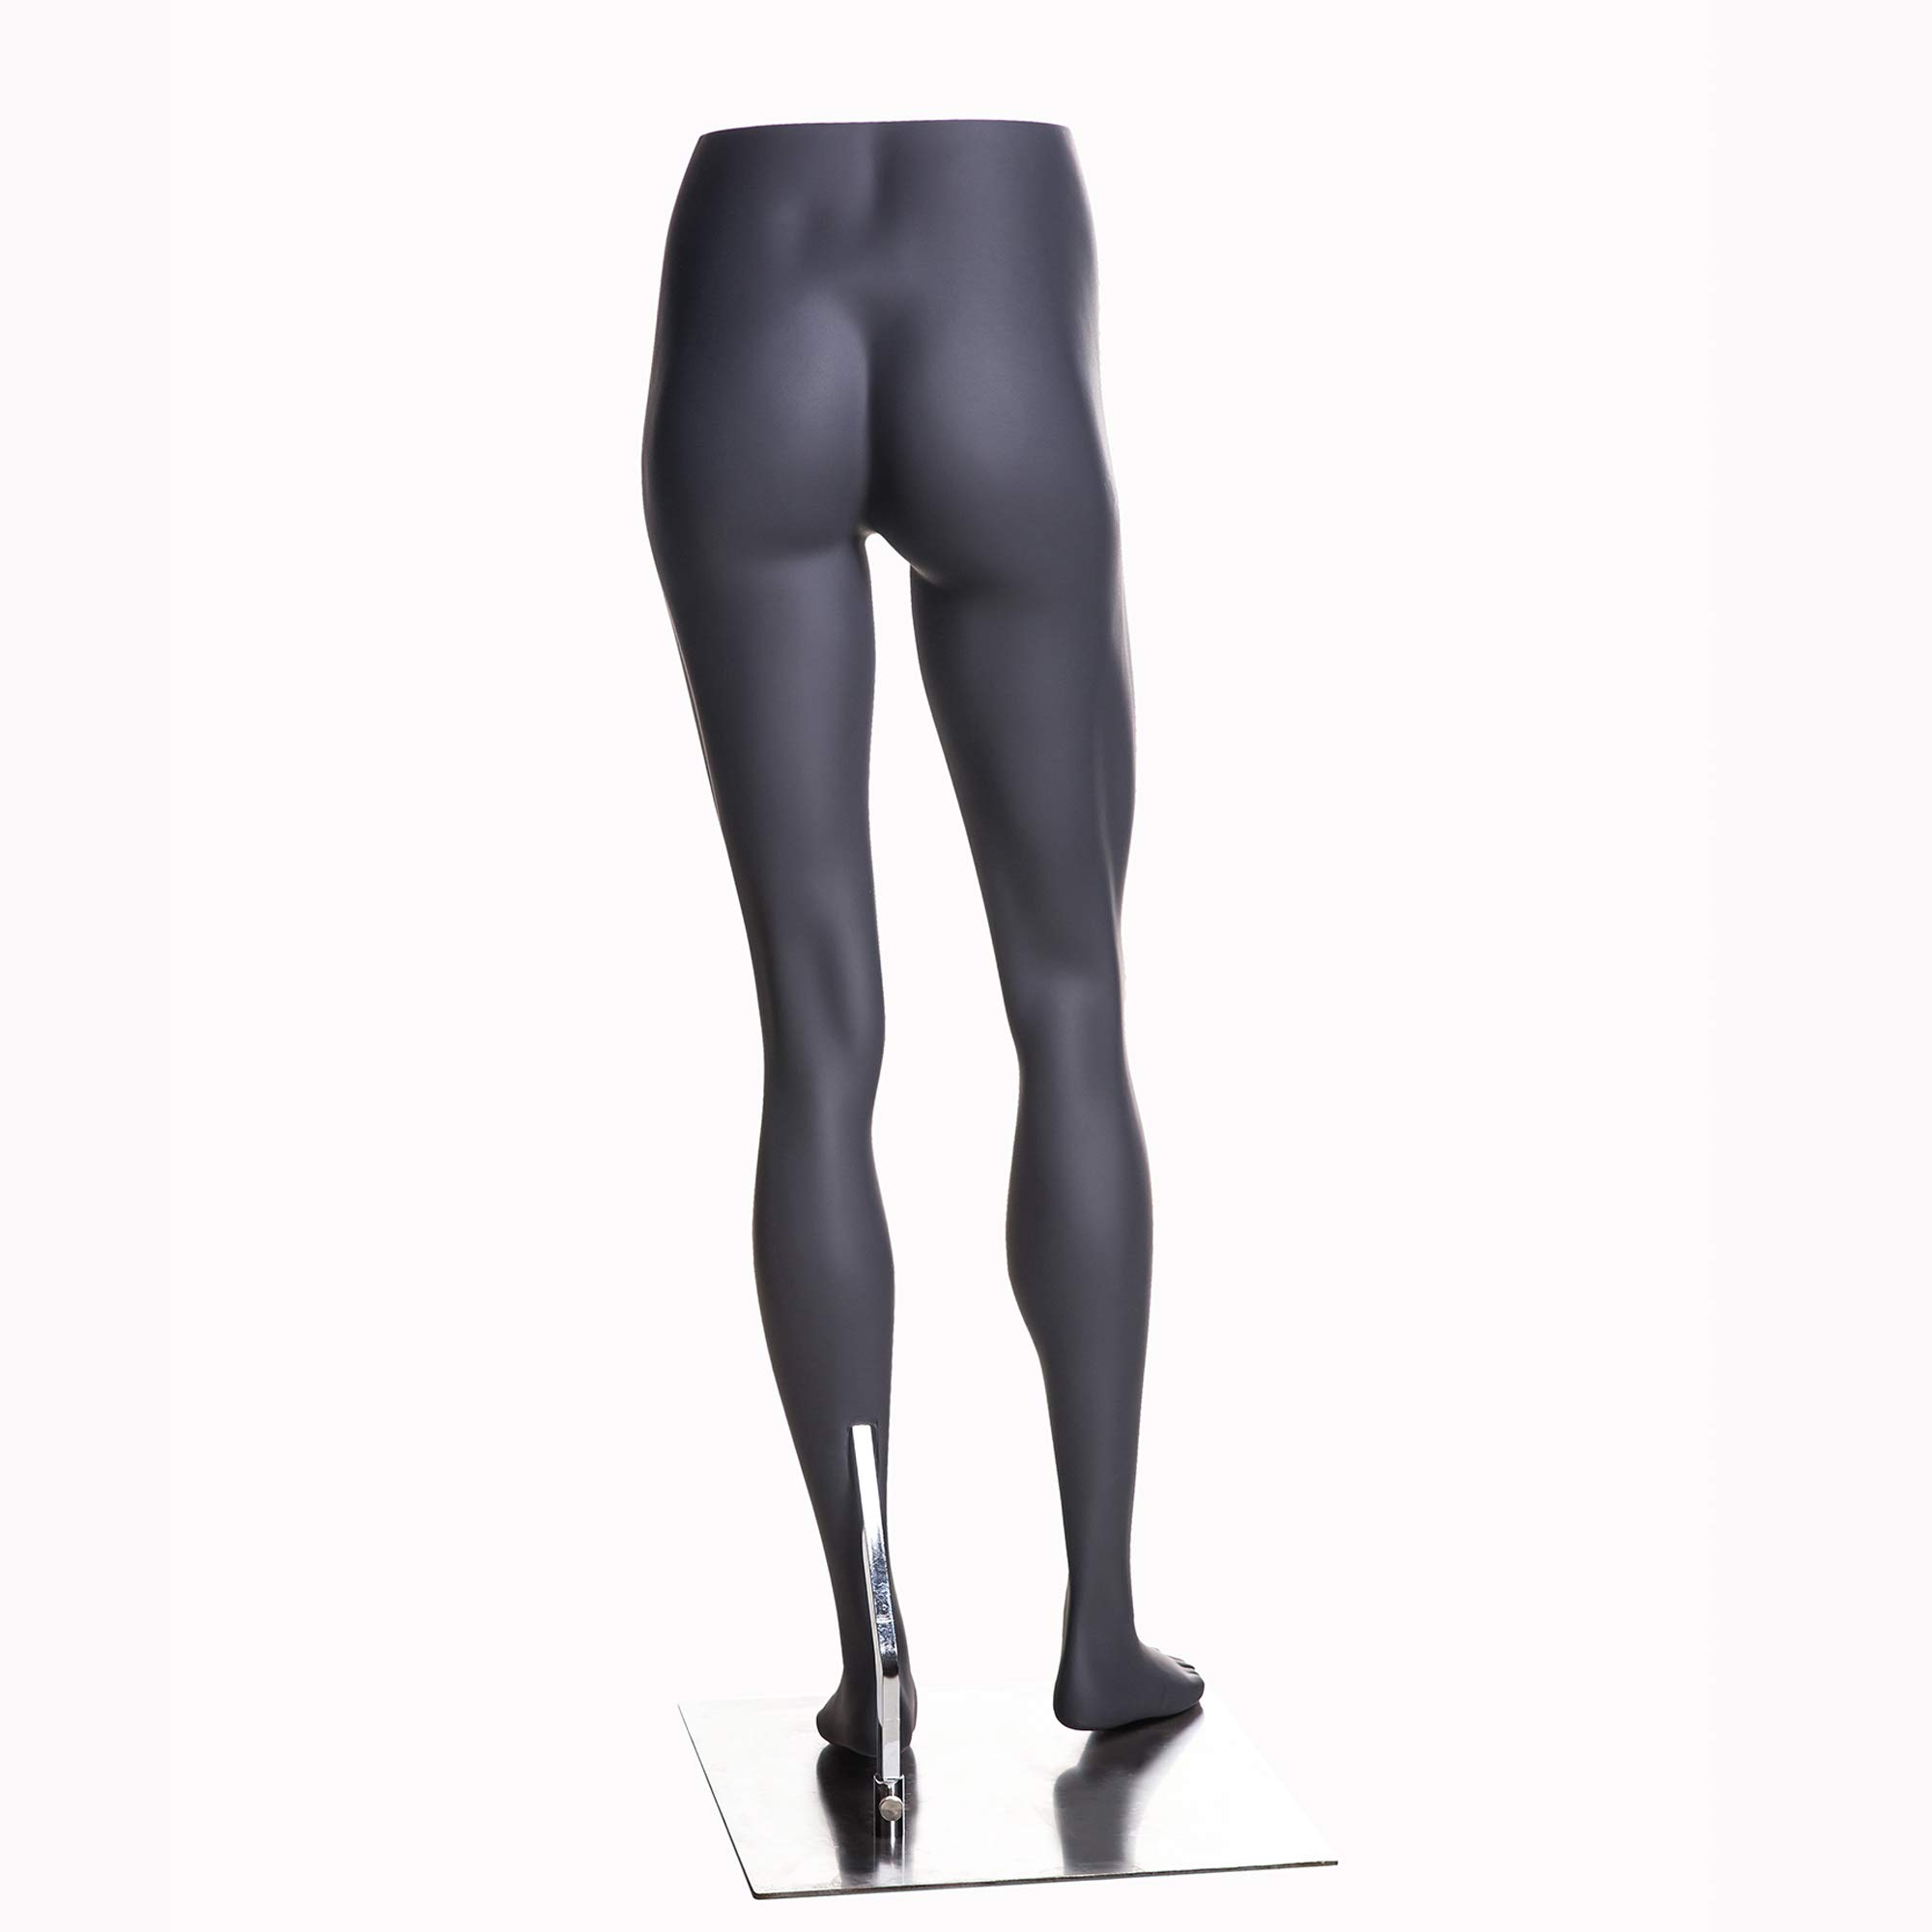 (MZ-HEF22LEG) High end Quality. Eye Catching Female Headless Mannequin Leg, Athletic Style. Standing Pose. by Roxy Display (Image #4)